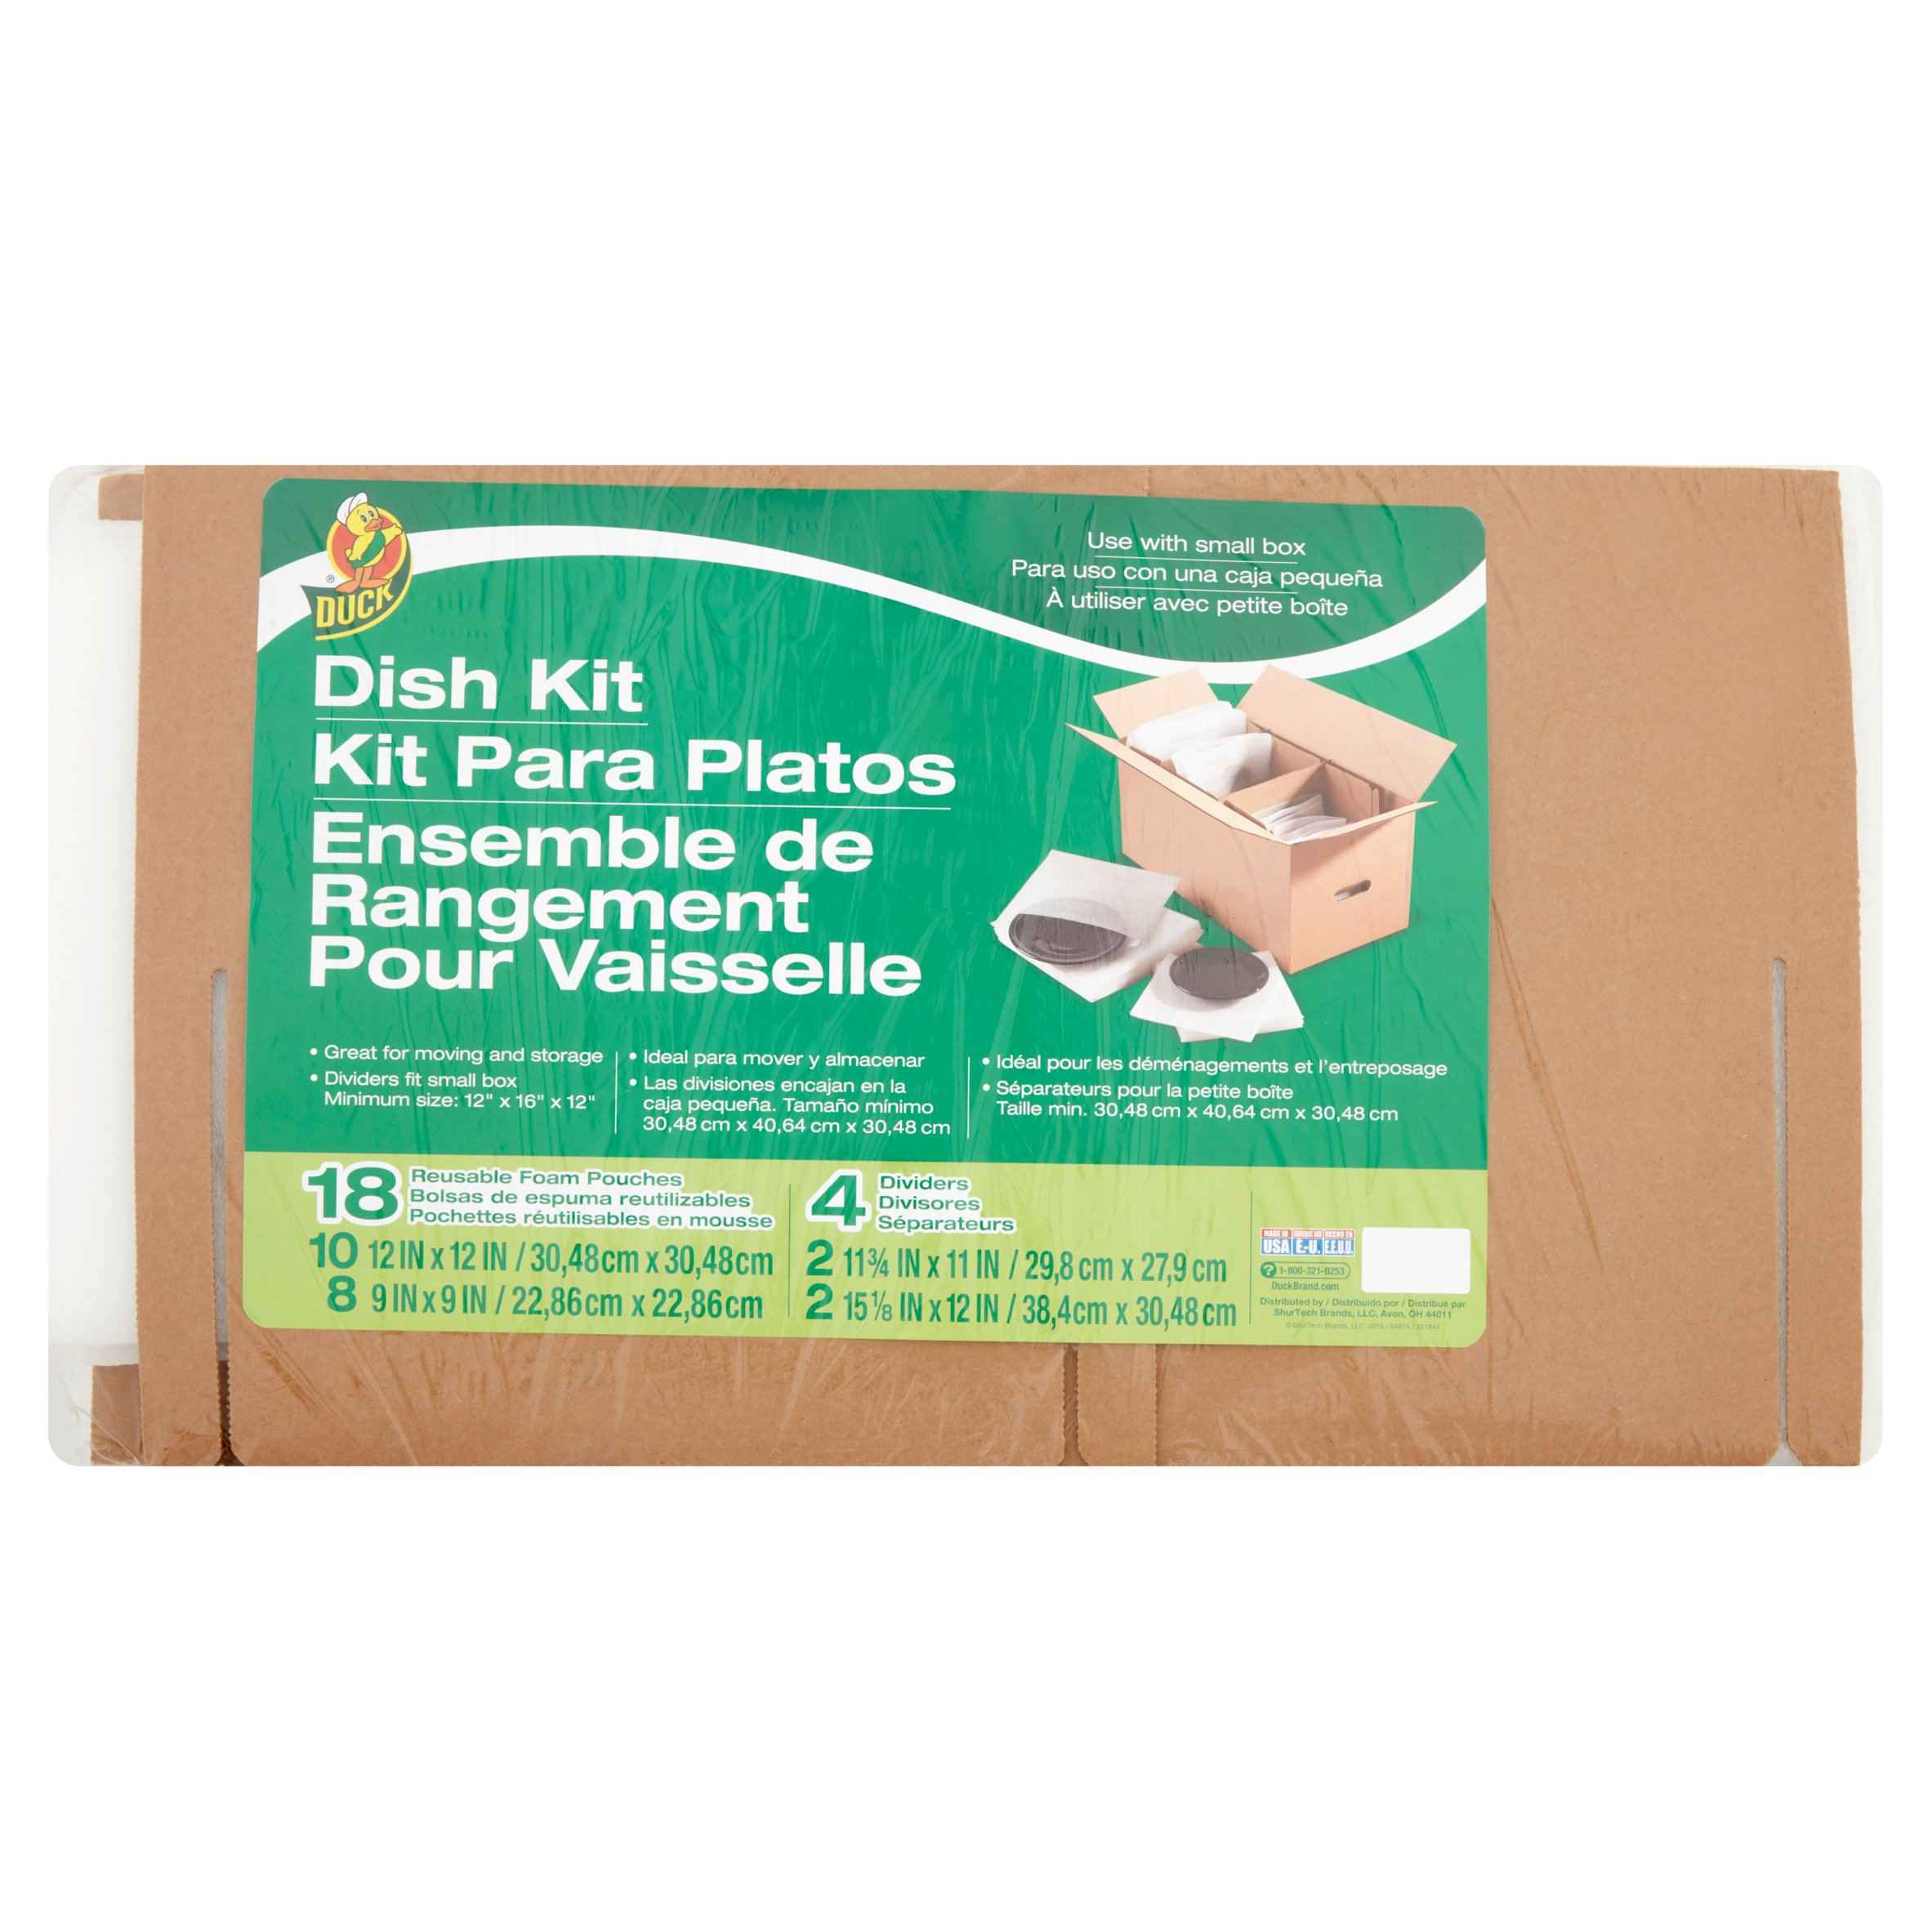 Duck Dish Moving Kit, Includes 18 Foam Pouches and 4 Dividers (Box Not Included)